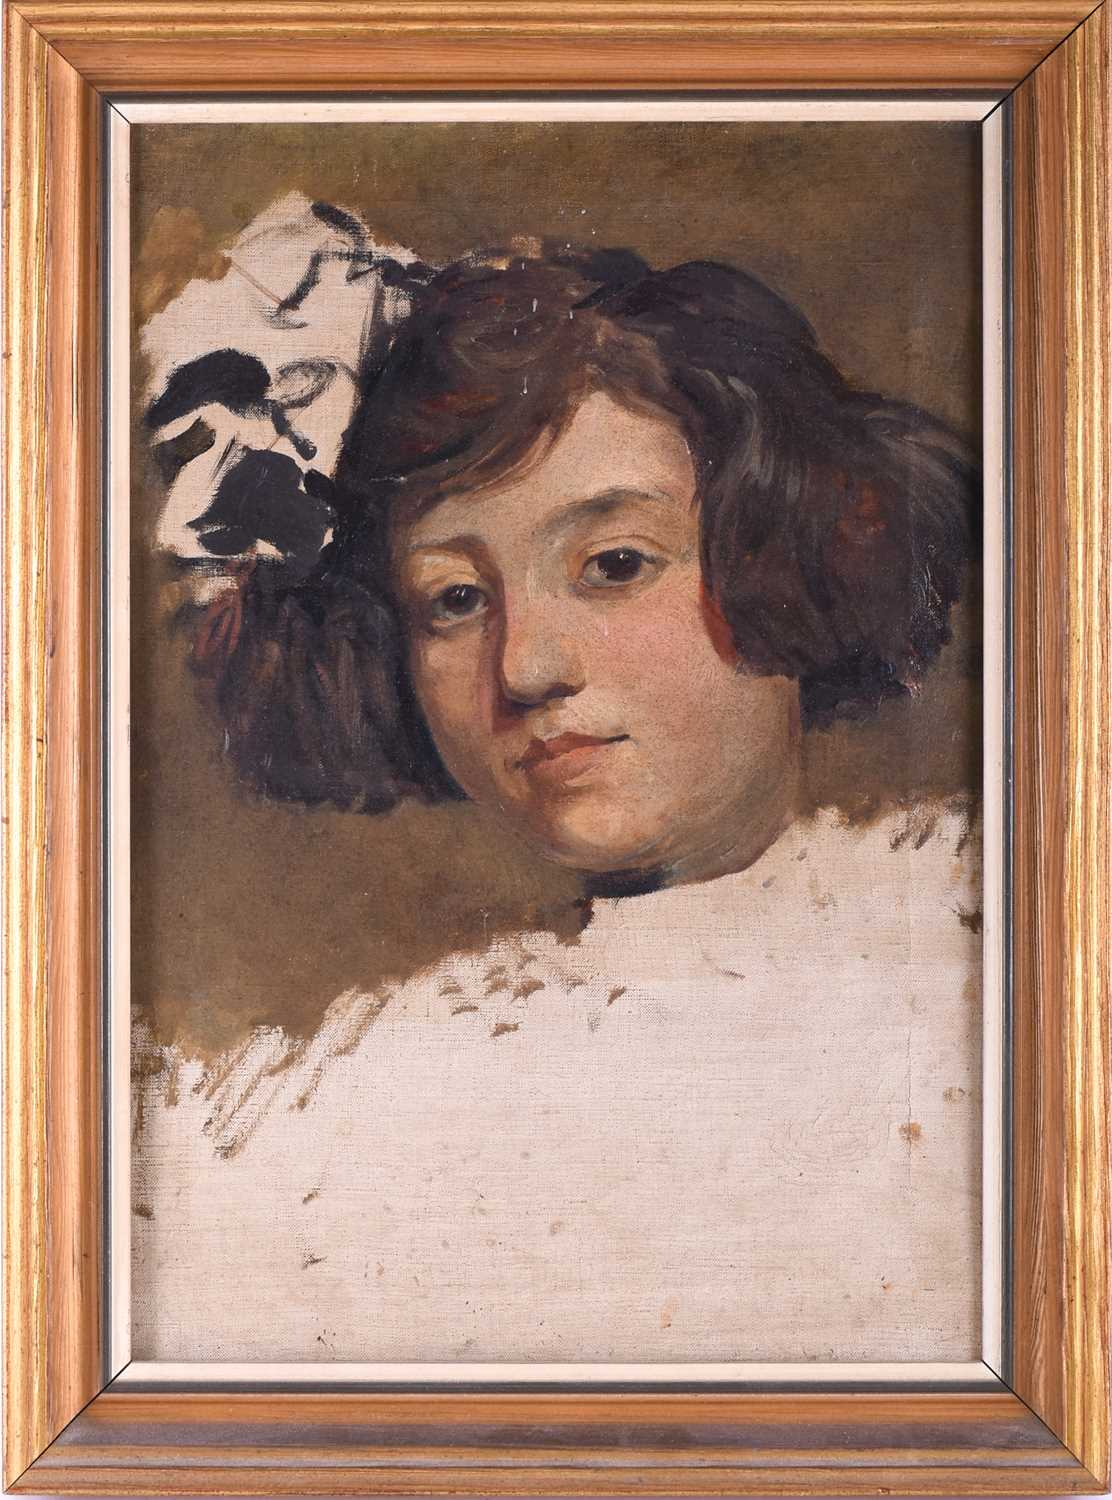 Lot 22 - Fortunino Matania (1881-1963) Italian, an unfinished portrait of a young girl, most likely a